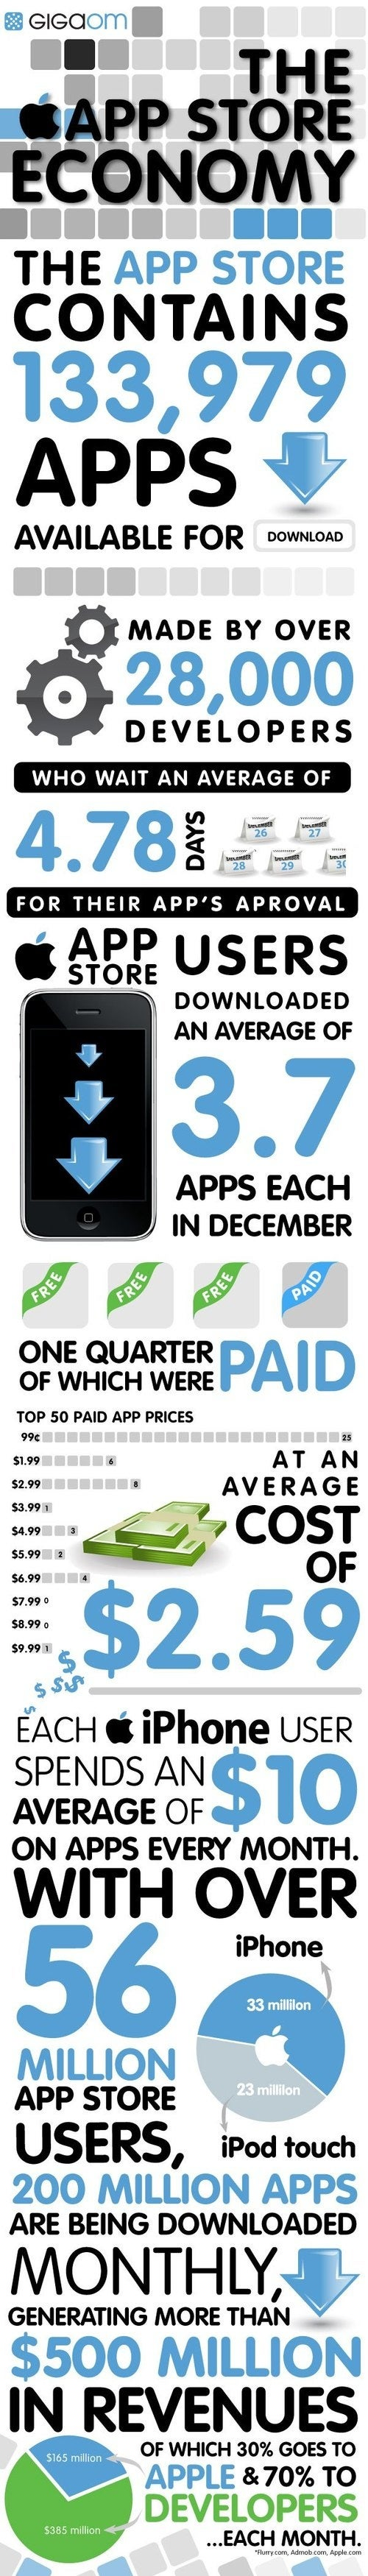 The App Store Economy is Booming